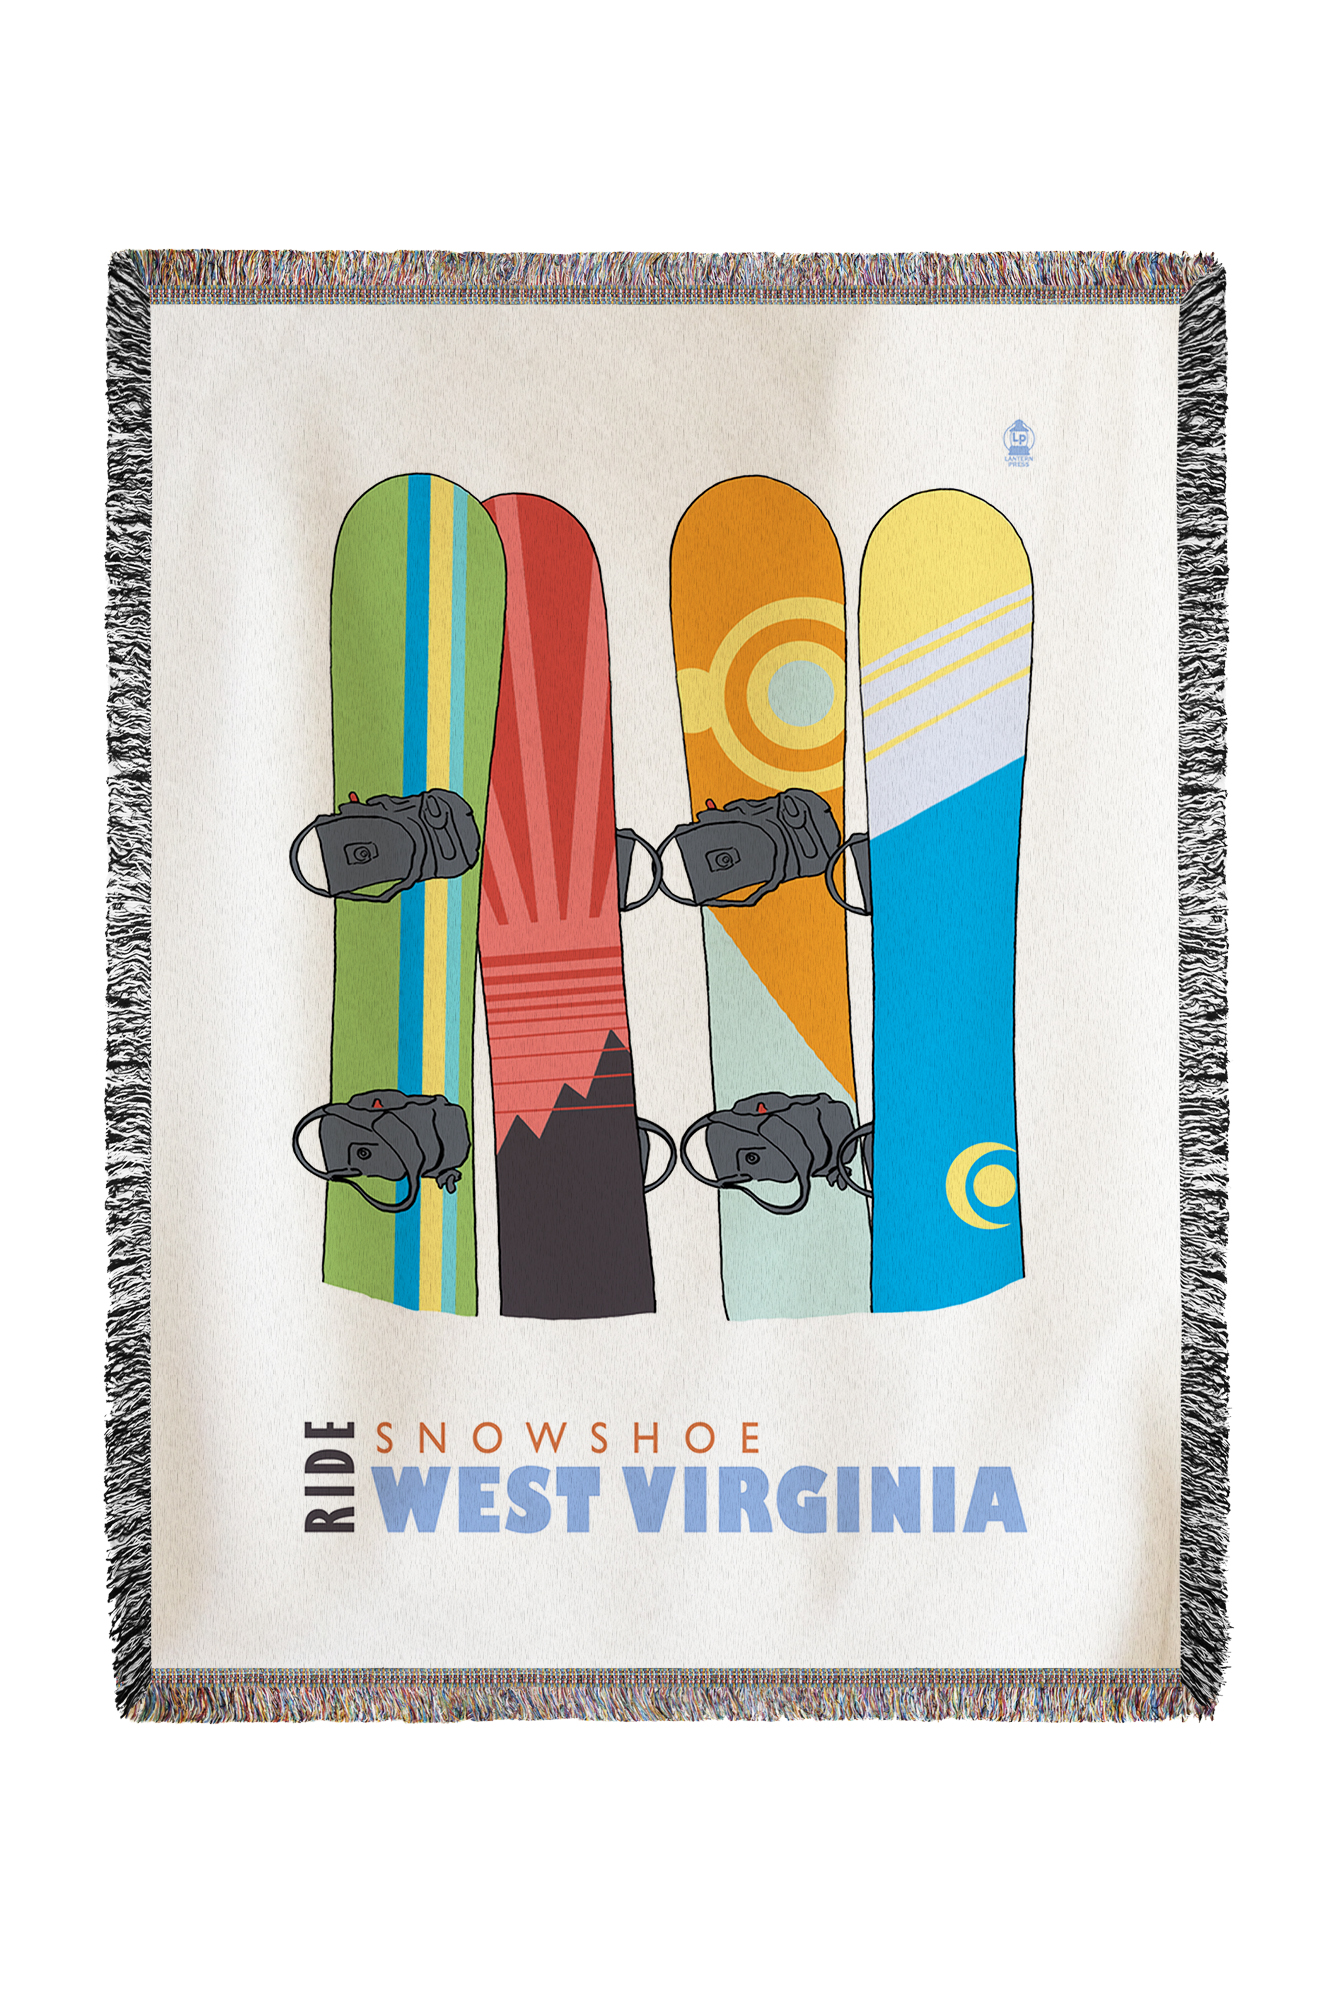 Snowshoe, West Virginia Snowboards in Snow Lantern Press Poster (60x80 Woven Chenille Yarn Blanket) by Lantern Press